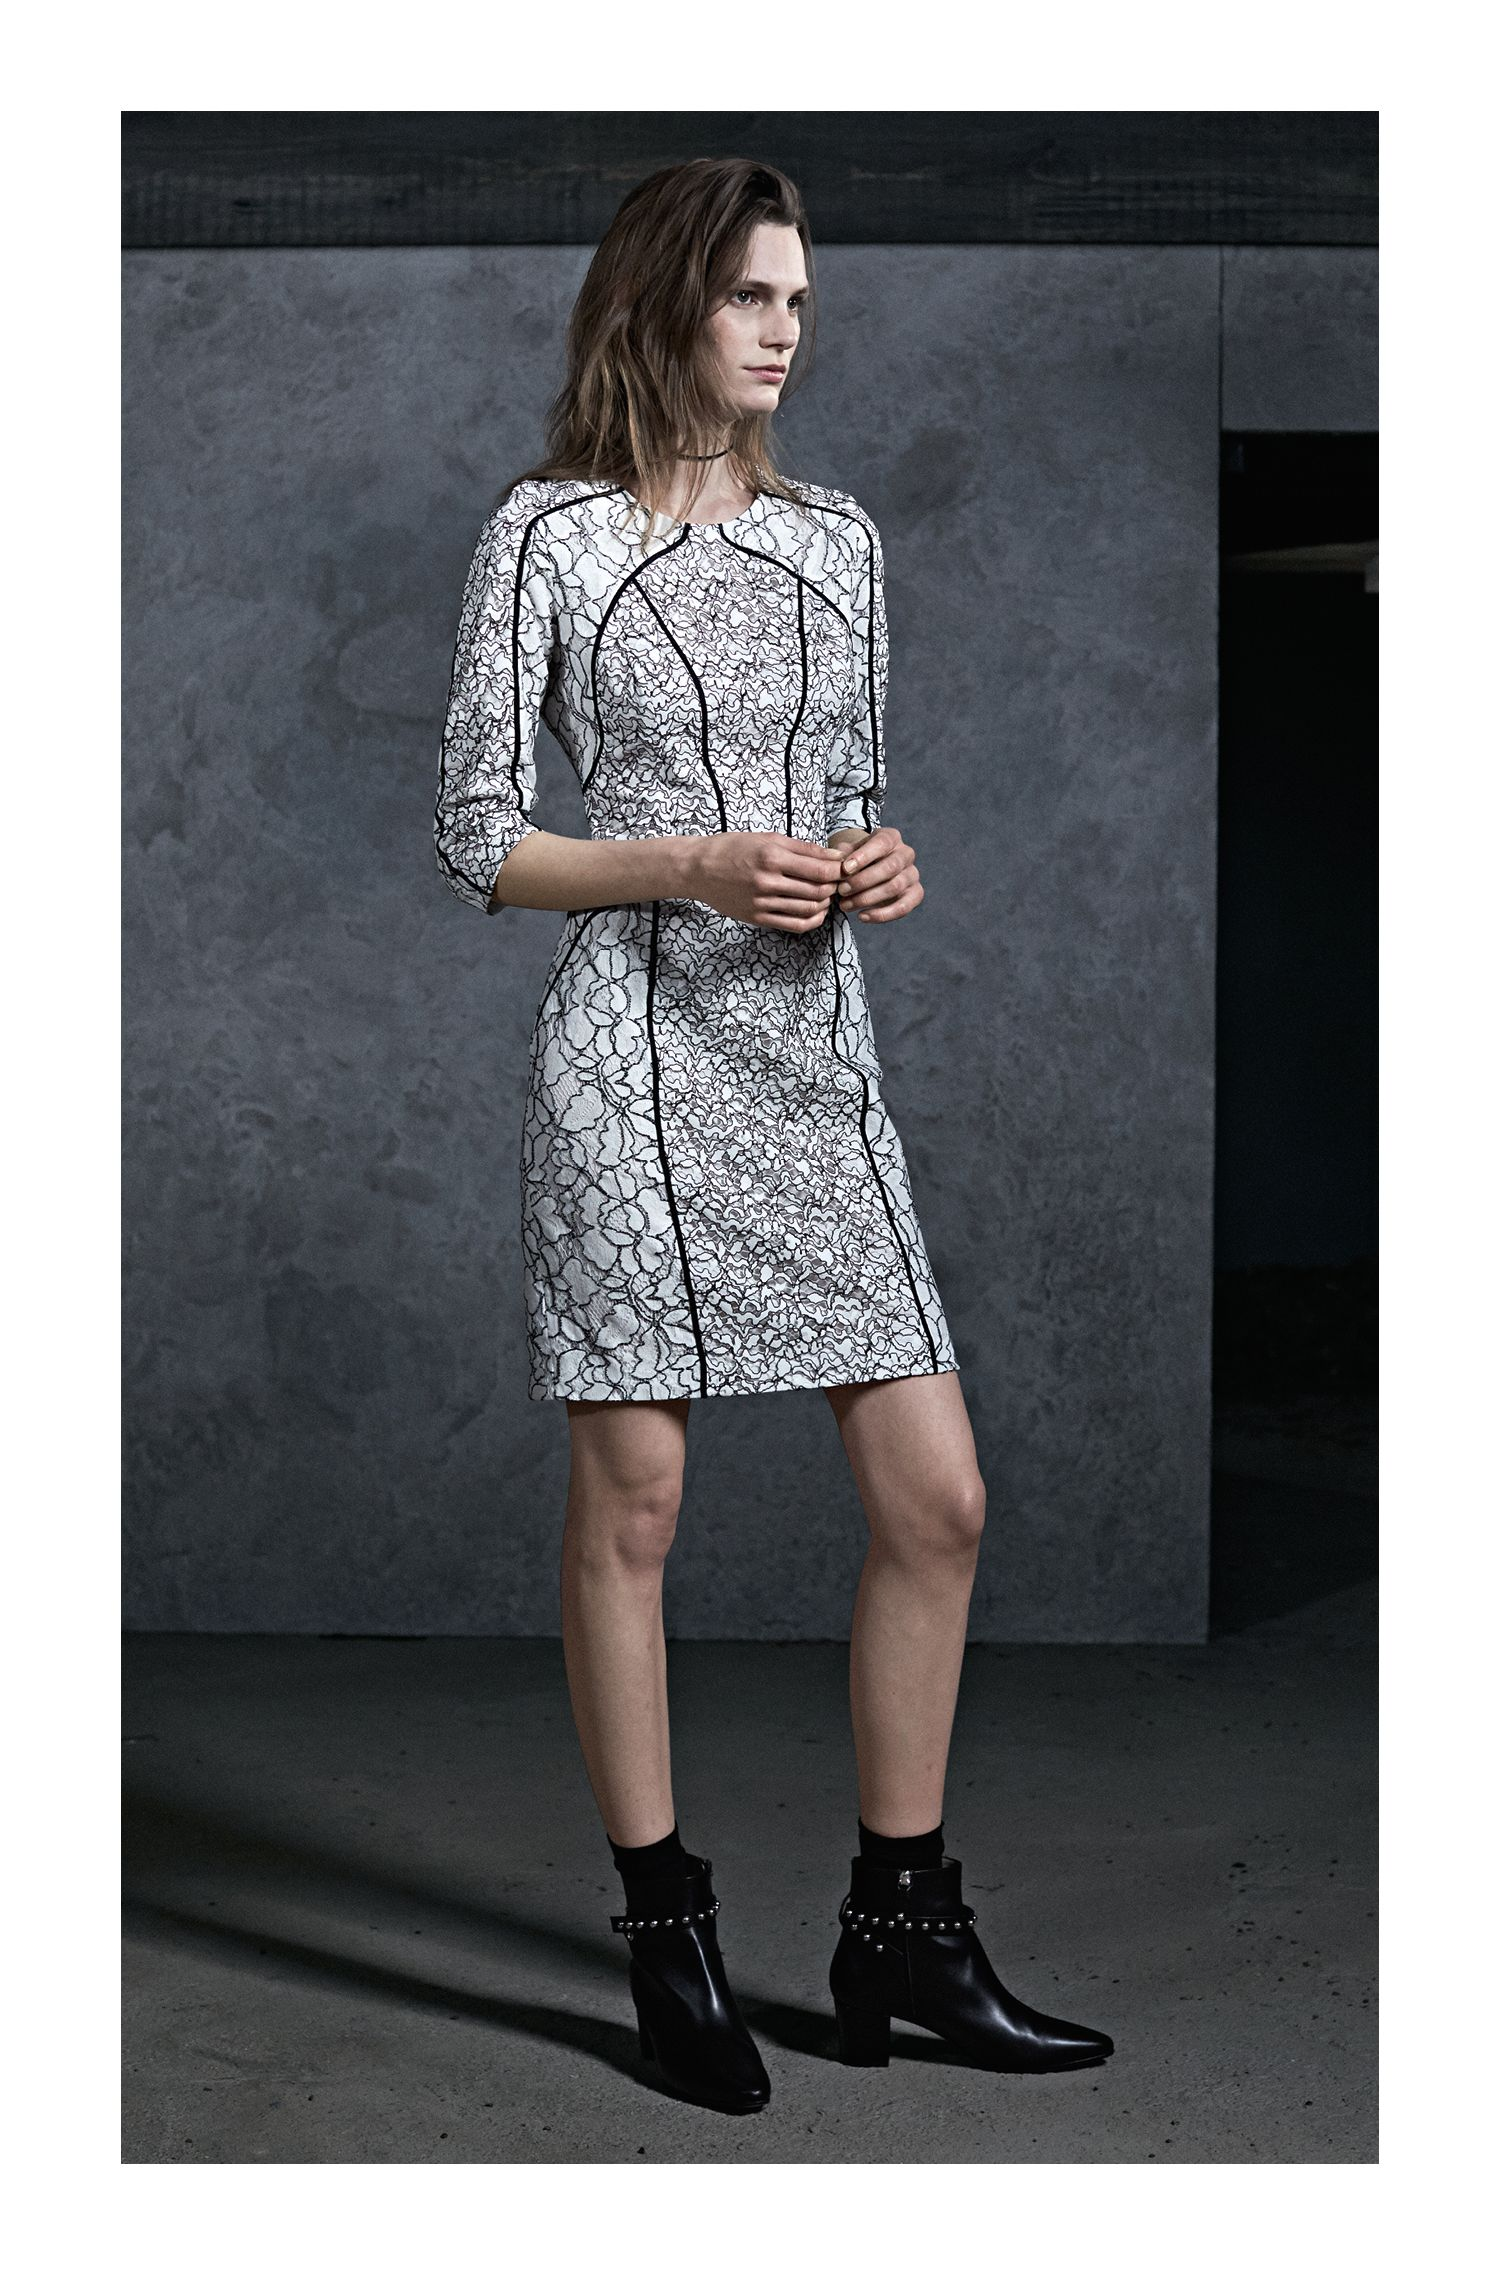 Patched Lace Dress | Karali, Patterned